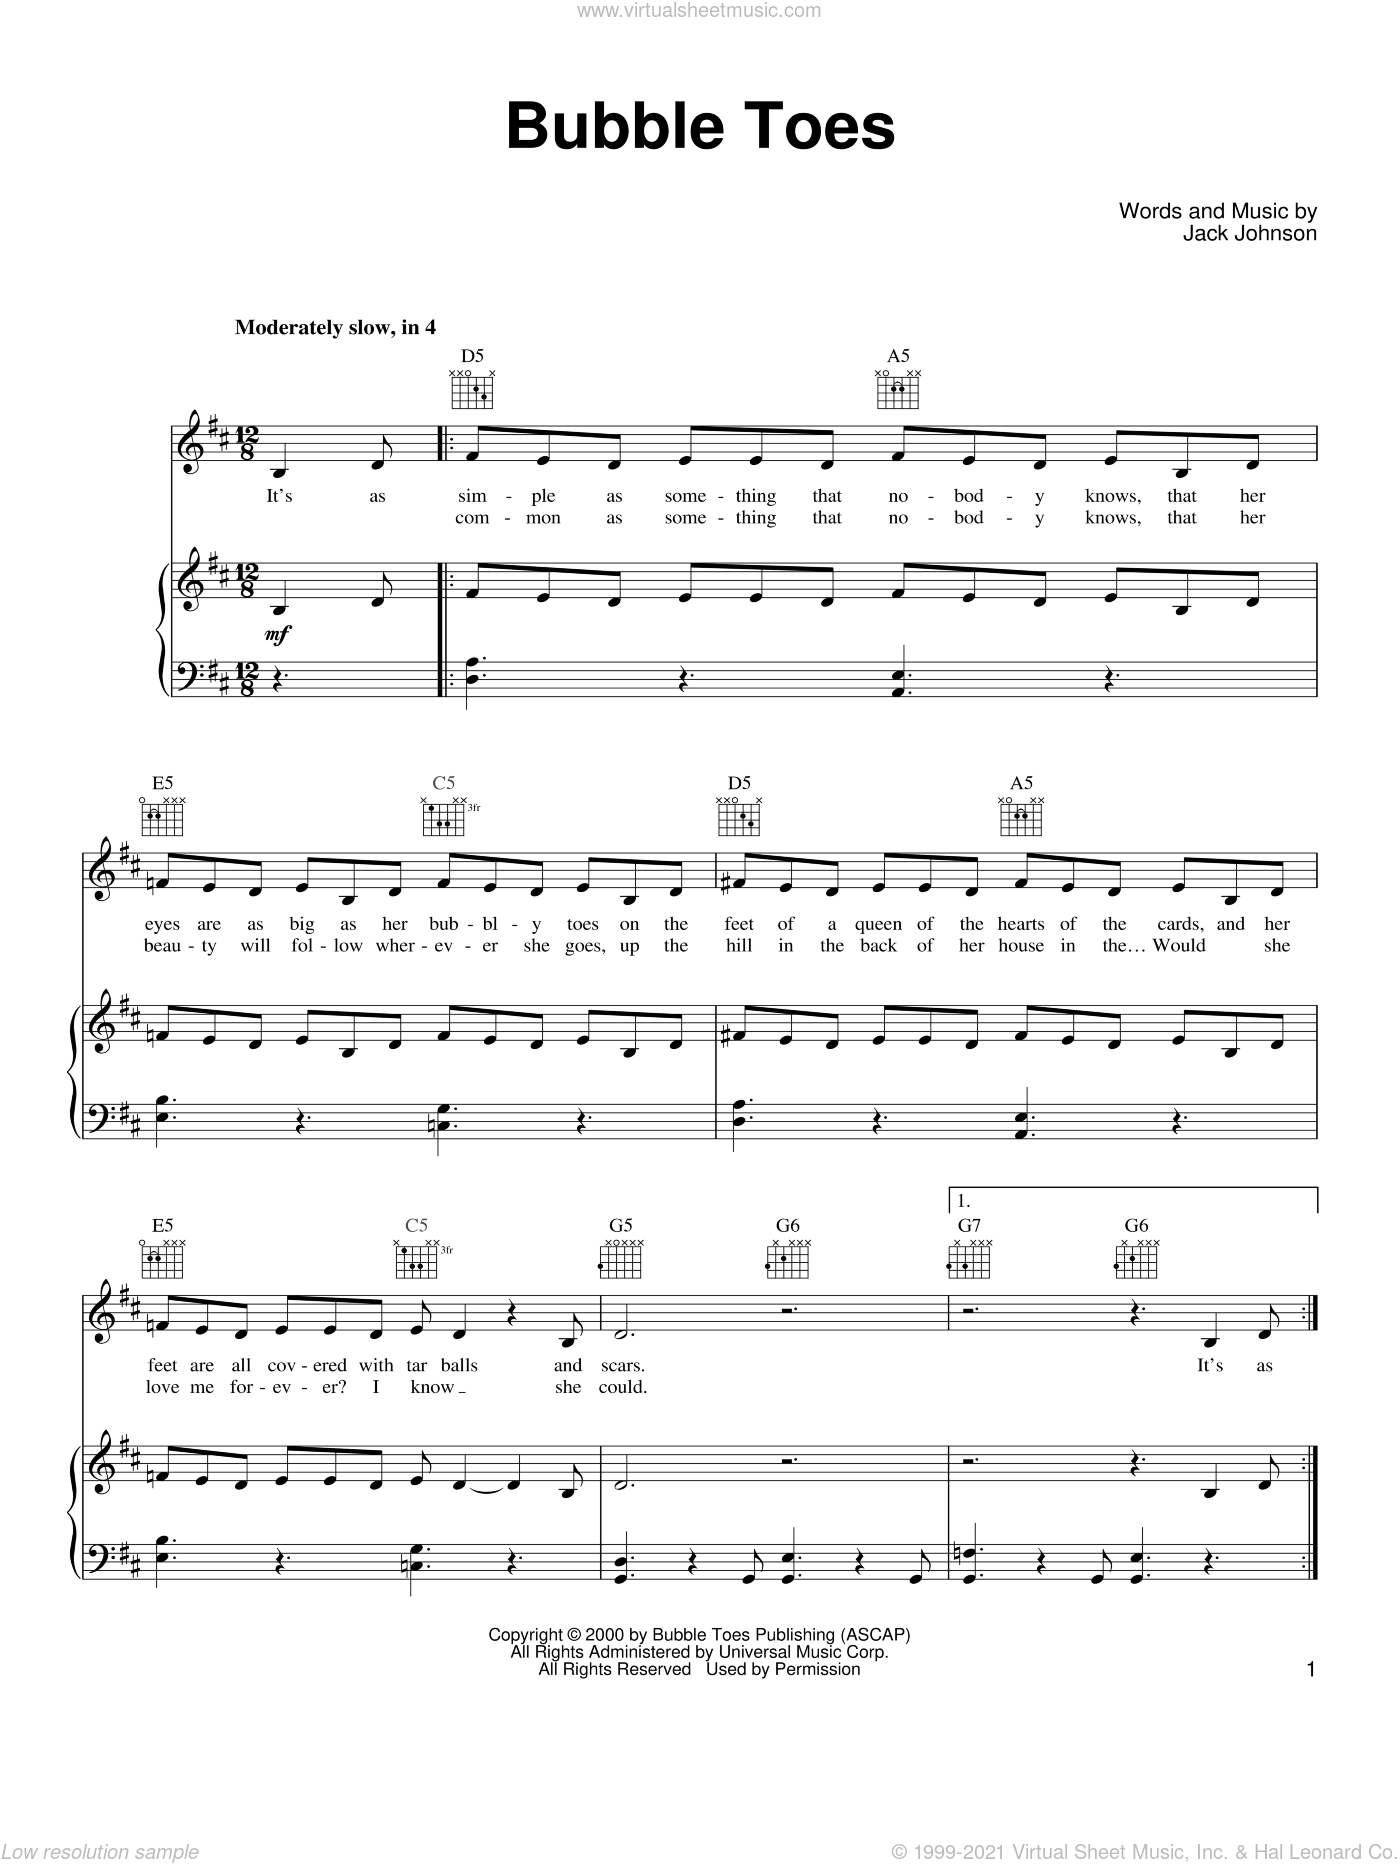 Bubble Toes sheet music for voice, piano or guitar by Jack Johnson, intermediate skill level